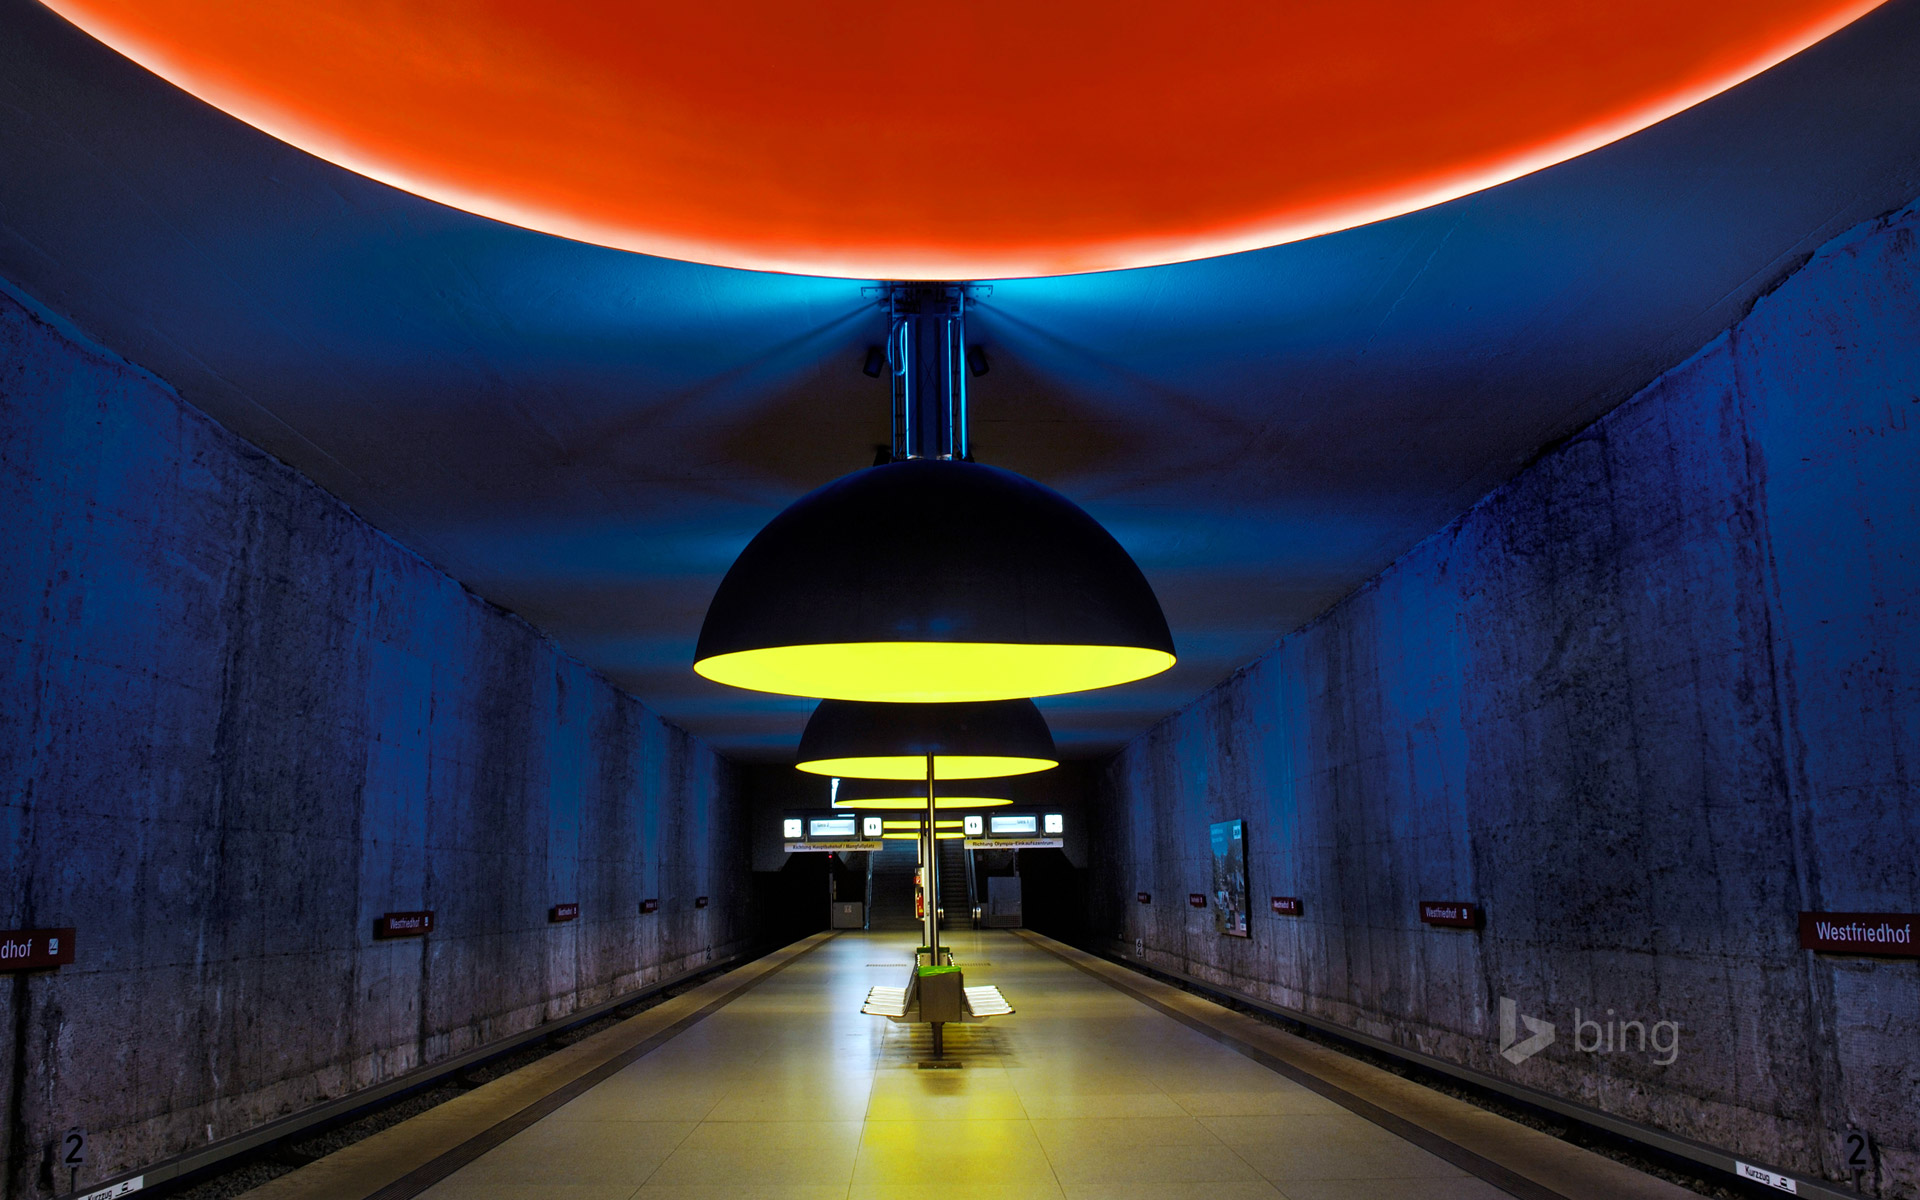 Westfriedhof subway station in Munich, Germany